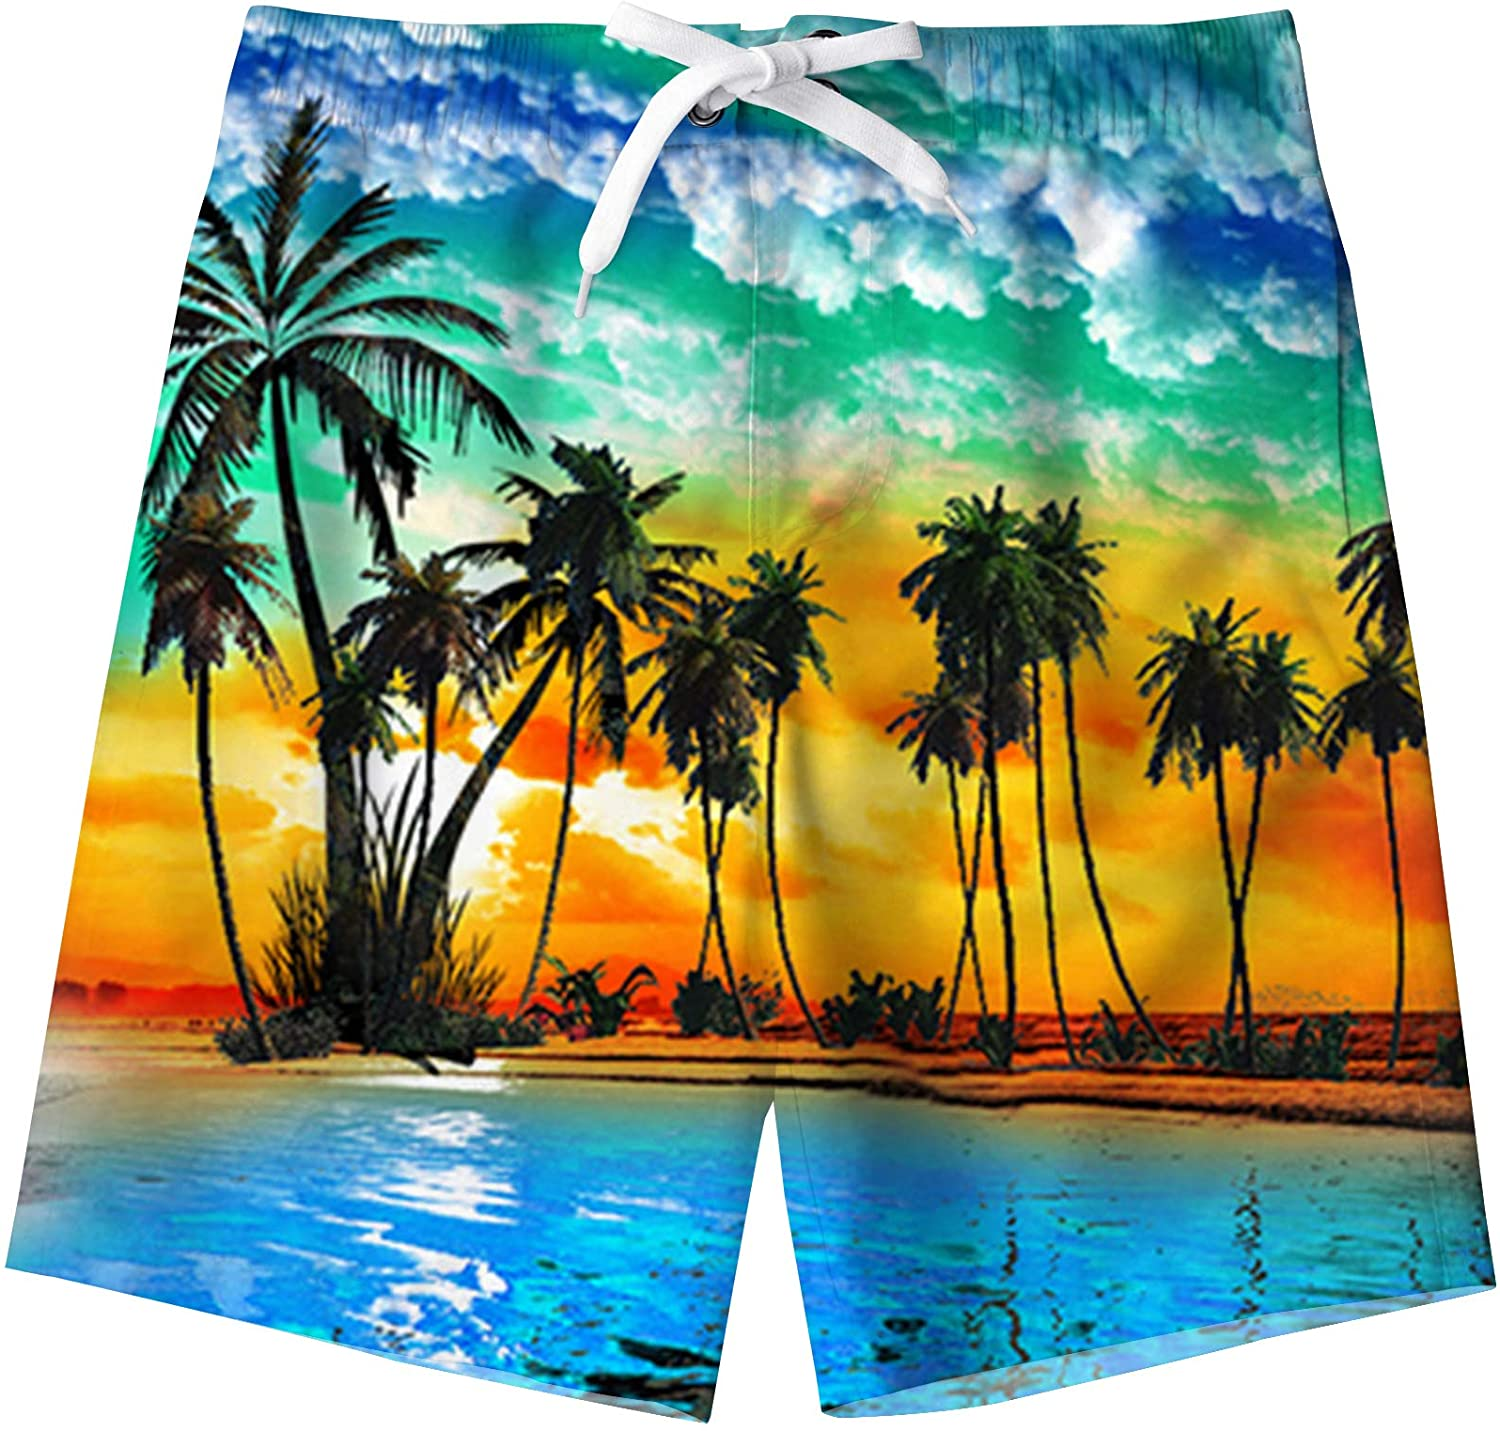 BFUSTYLE Kids Boys Swim Trunks Mesh Lining Water Resistant Beach Shorts 5-14 Years